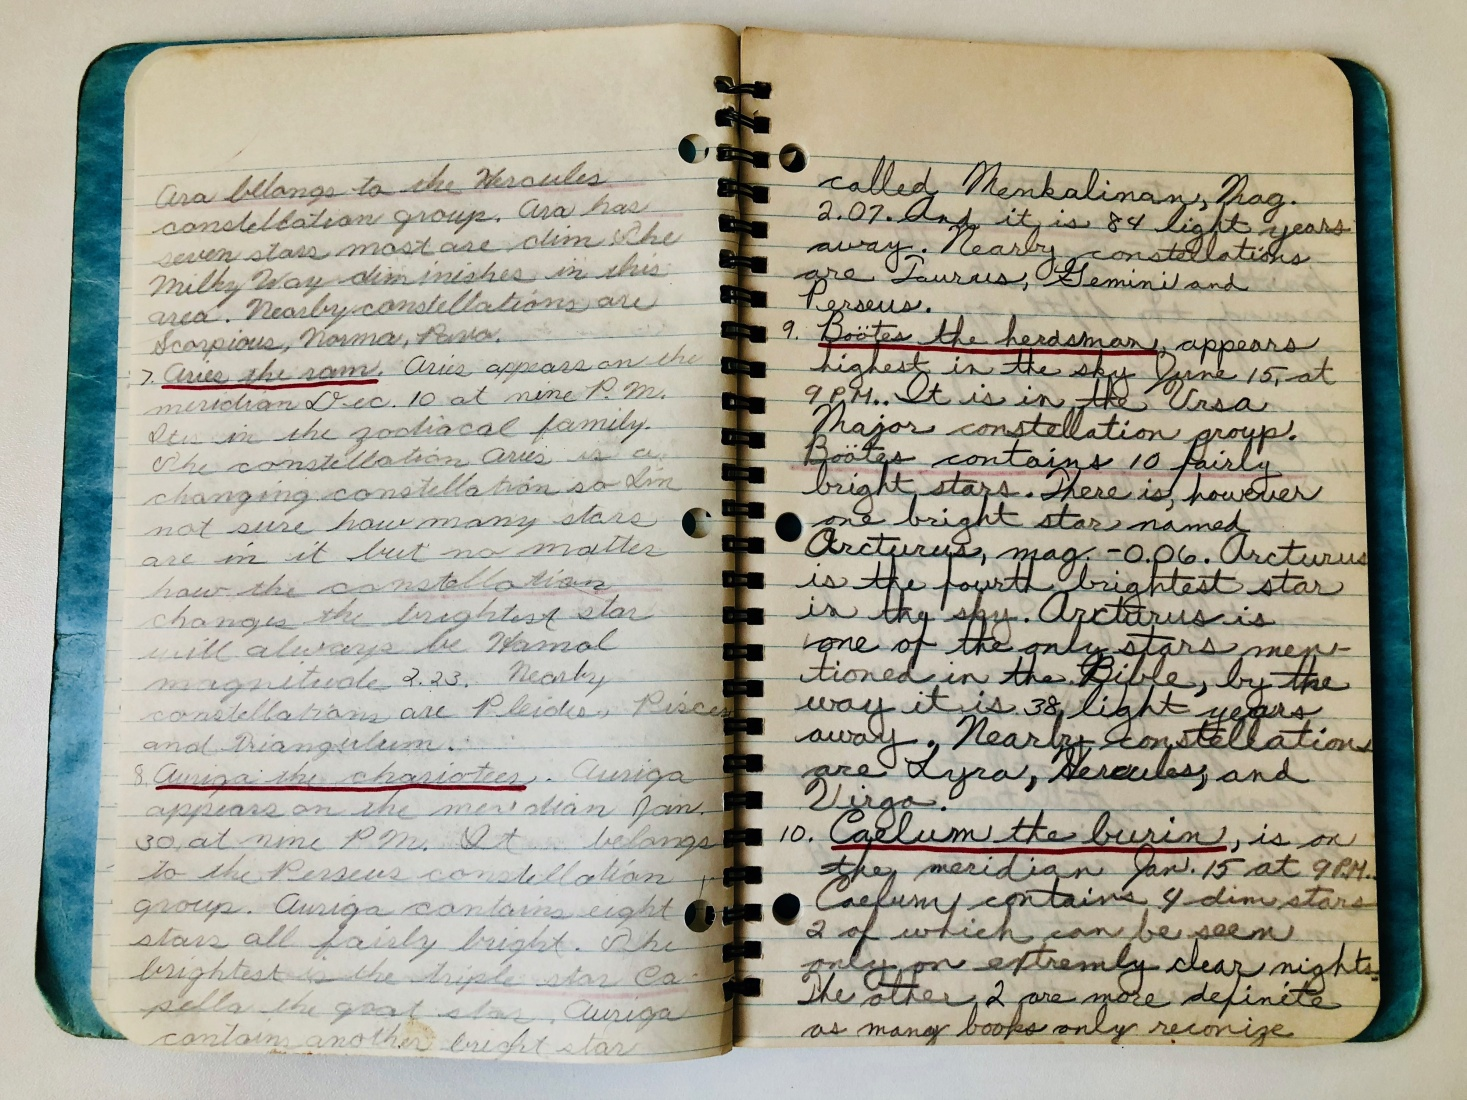 More pages from Mark Baker and his brother's notebook from when they were trying to write a book about constellations.